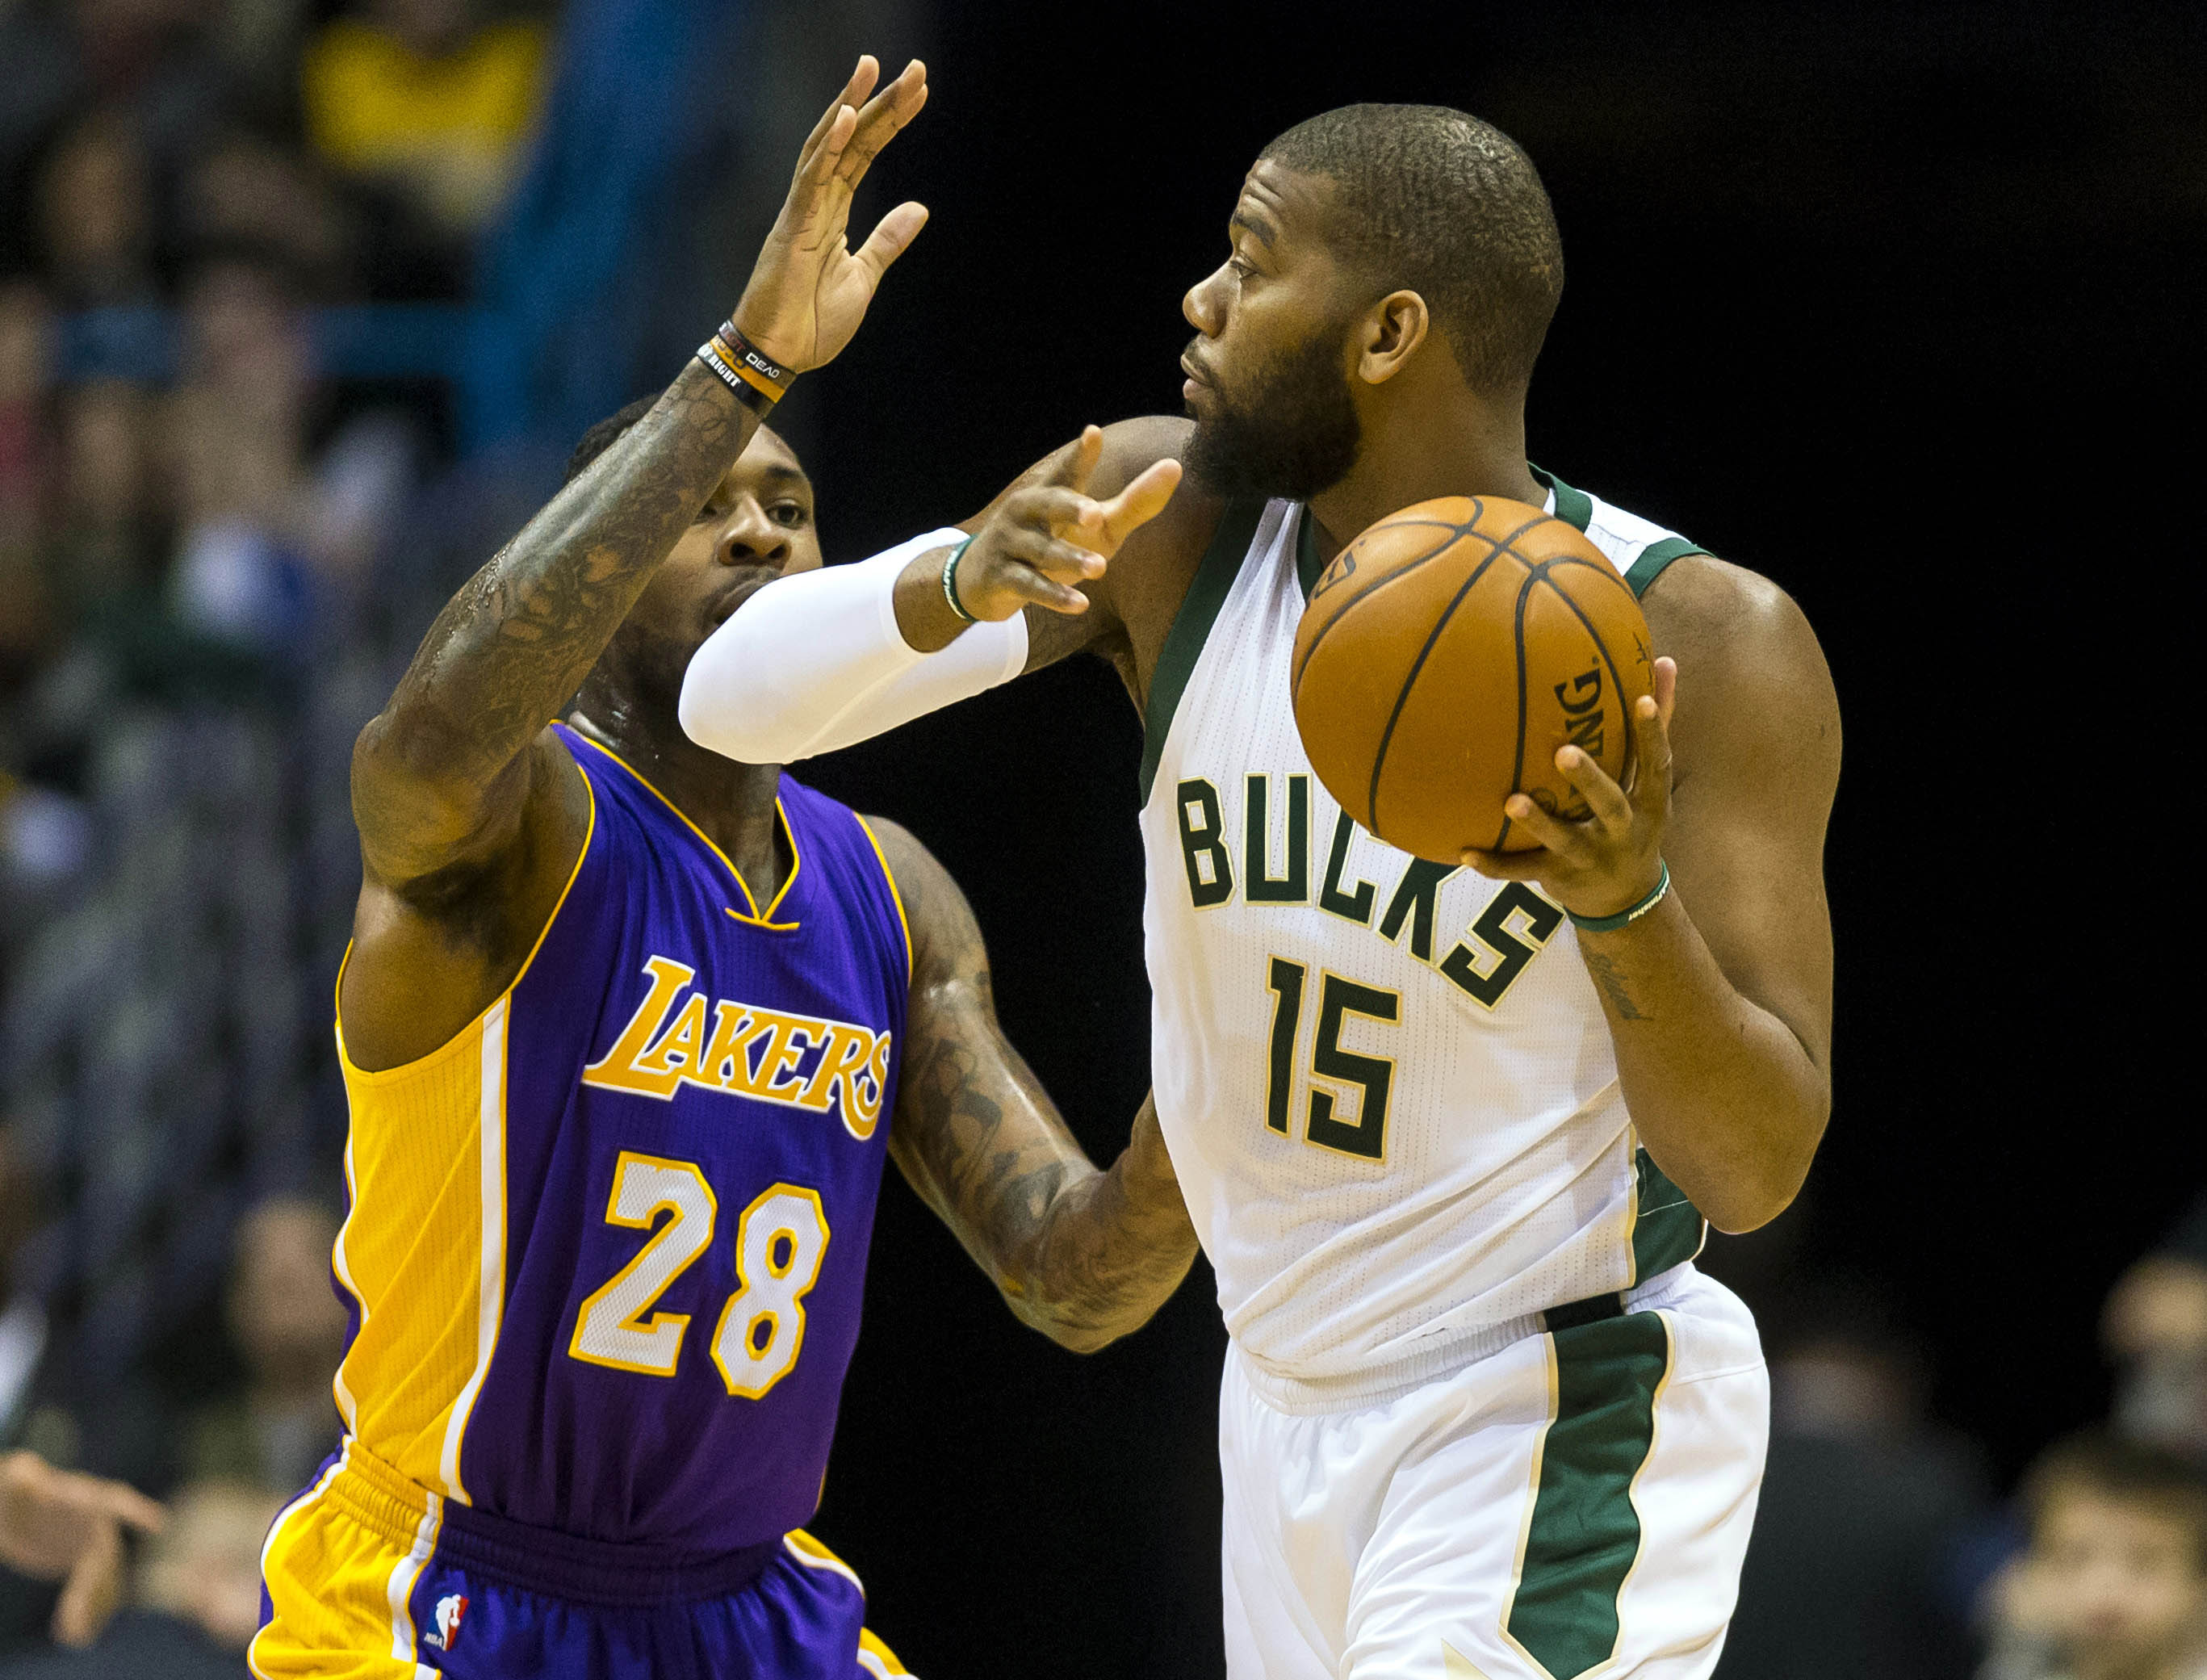 Feb 10, 2017; Milwaukee, WI, USA; Milwaukee Bucks center Greg Monroe (15) looks to pass the ball under pressure from Los Angeles Lakers center Tarik Black (28) during the first quarter at BMO Harris Bradley Center. Mandatory Credit: Jeff Hanisch-USA TODAY Sports